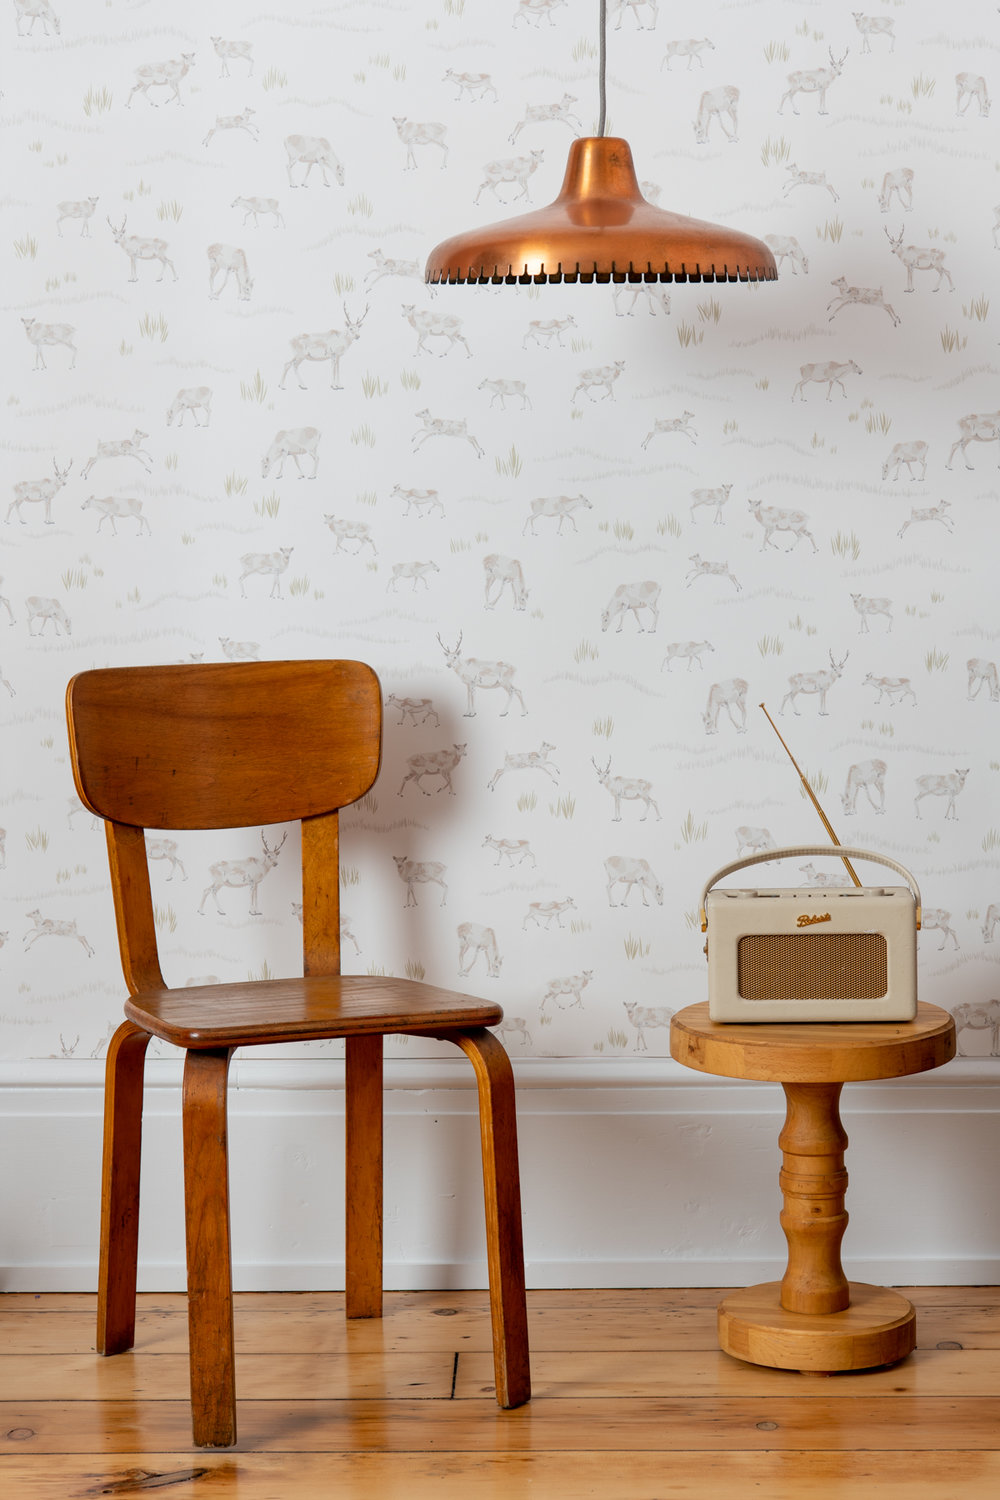 Kate Golding Caribou wallpaper // Modern wallcoverings and interior decor.